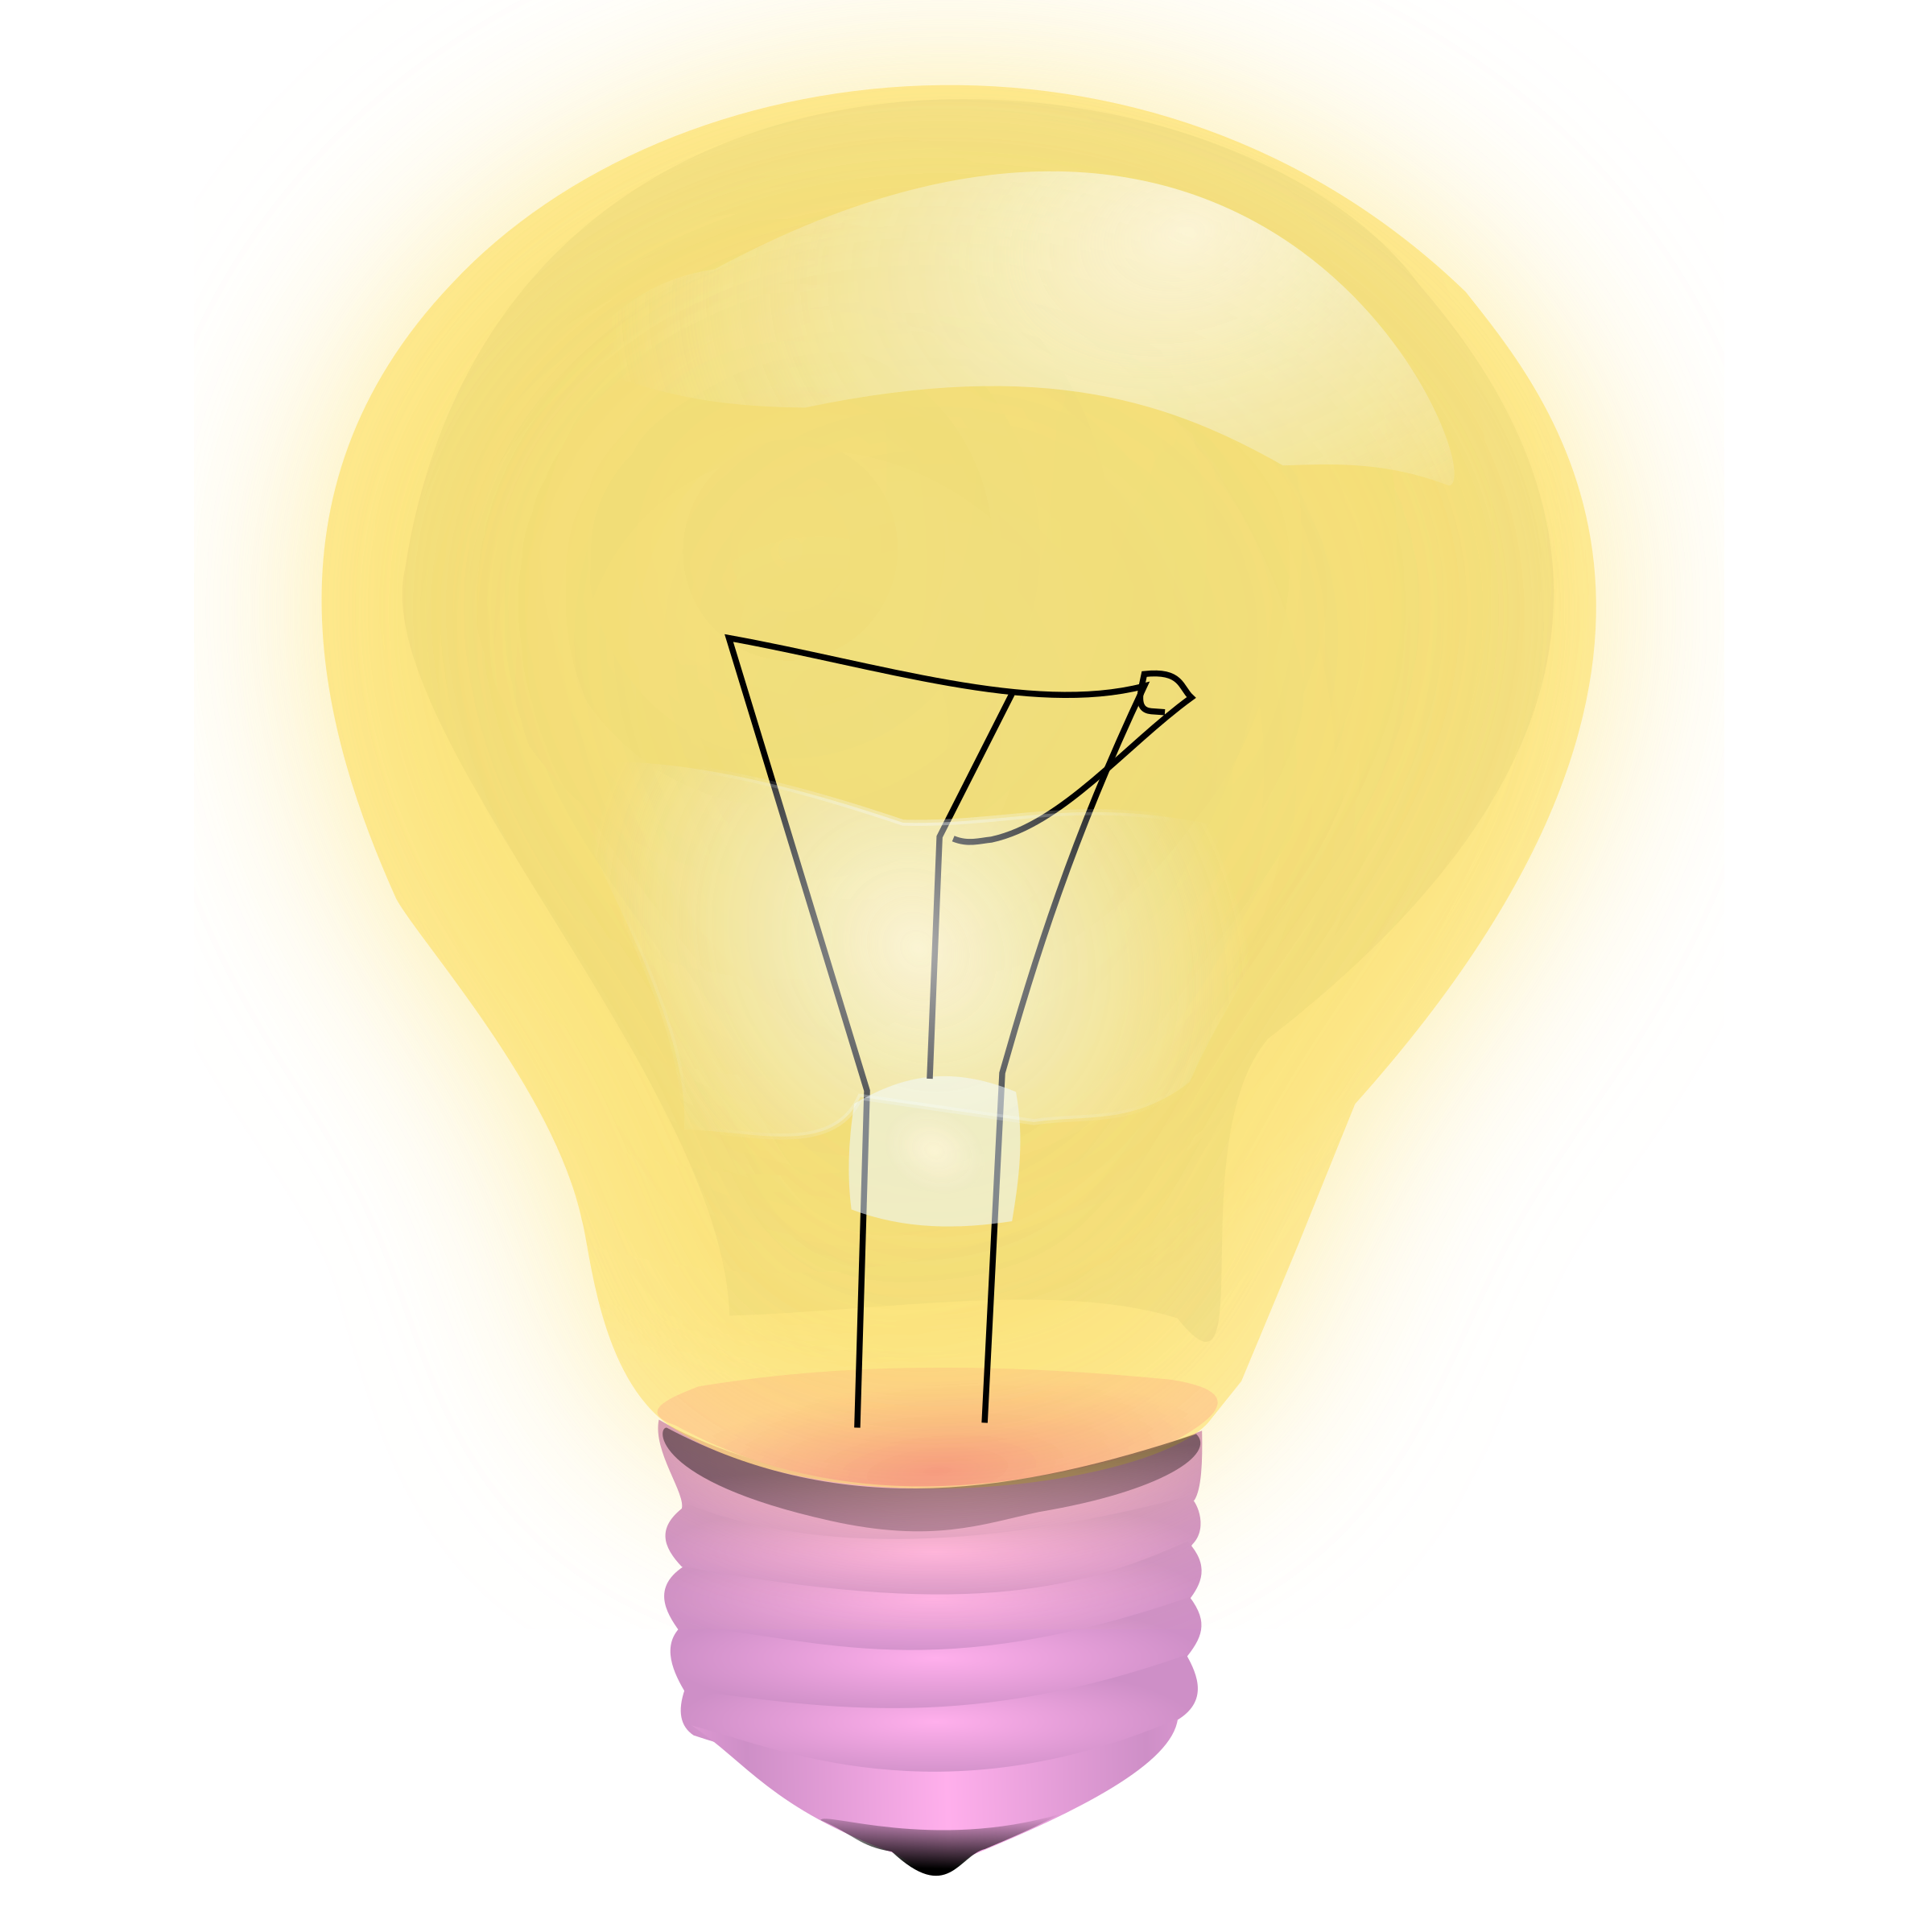 light bulb by frankes